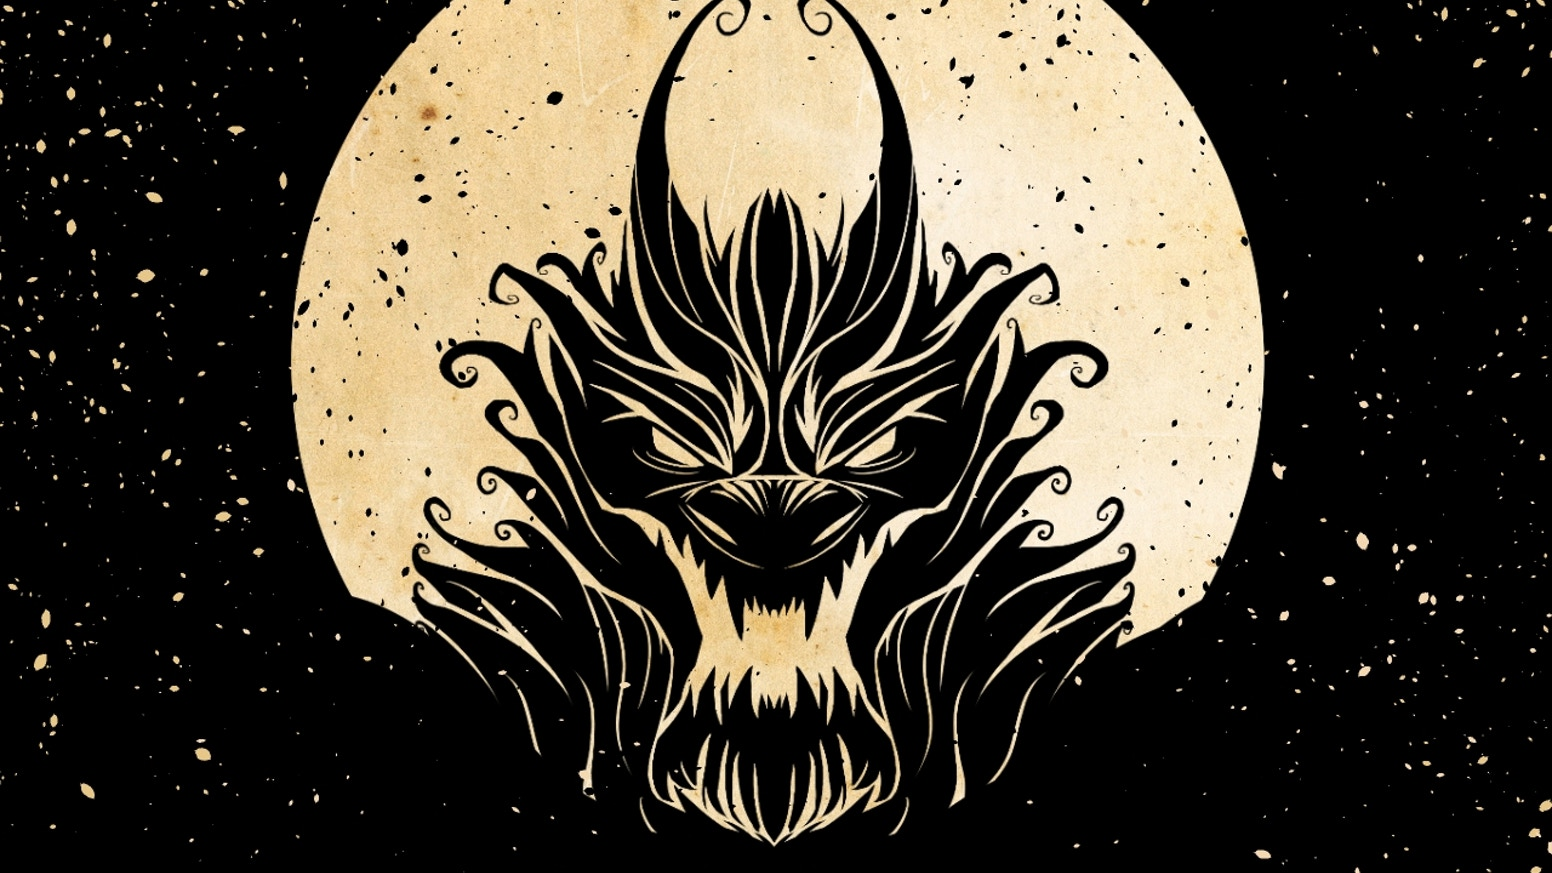 werewolf full moon expansion by corey fields 36 hours left